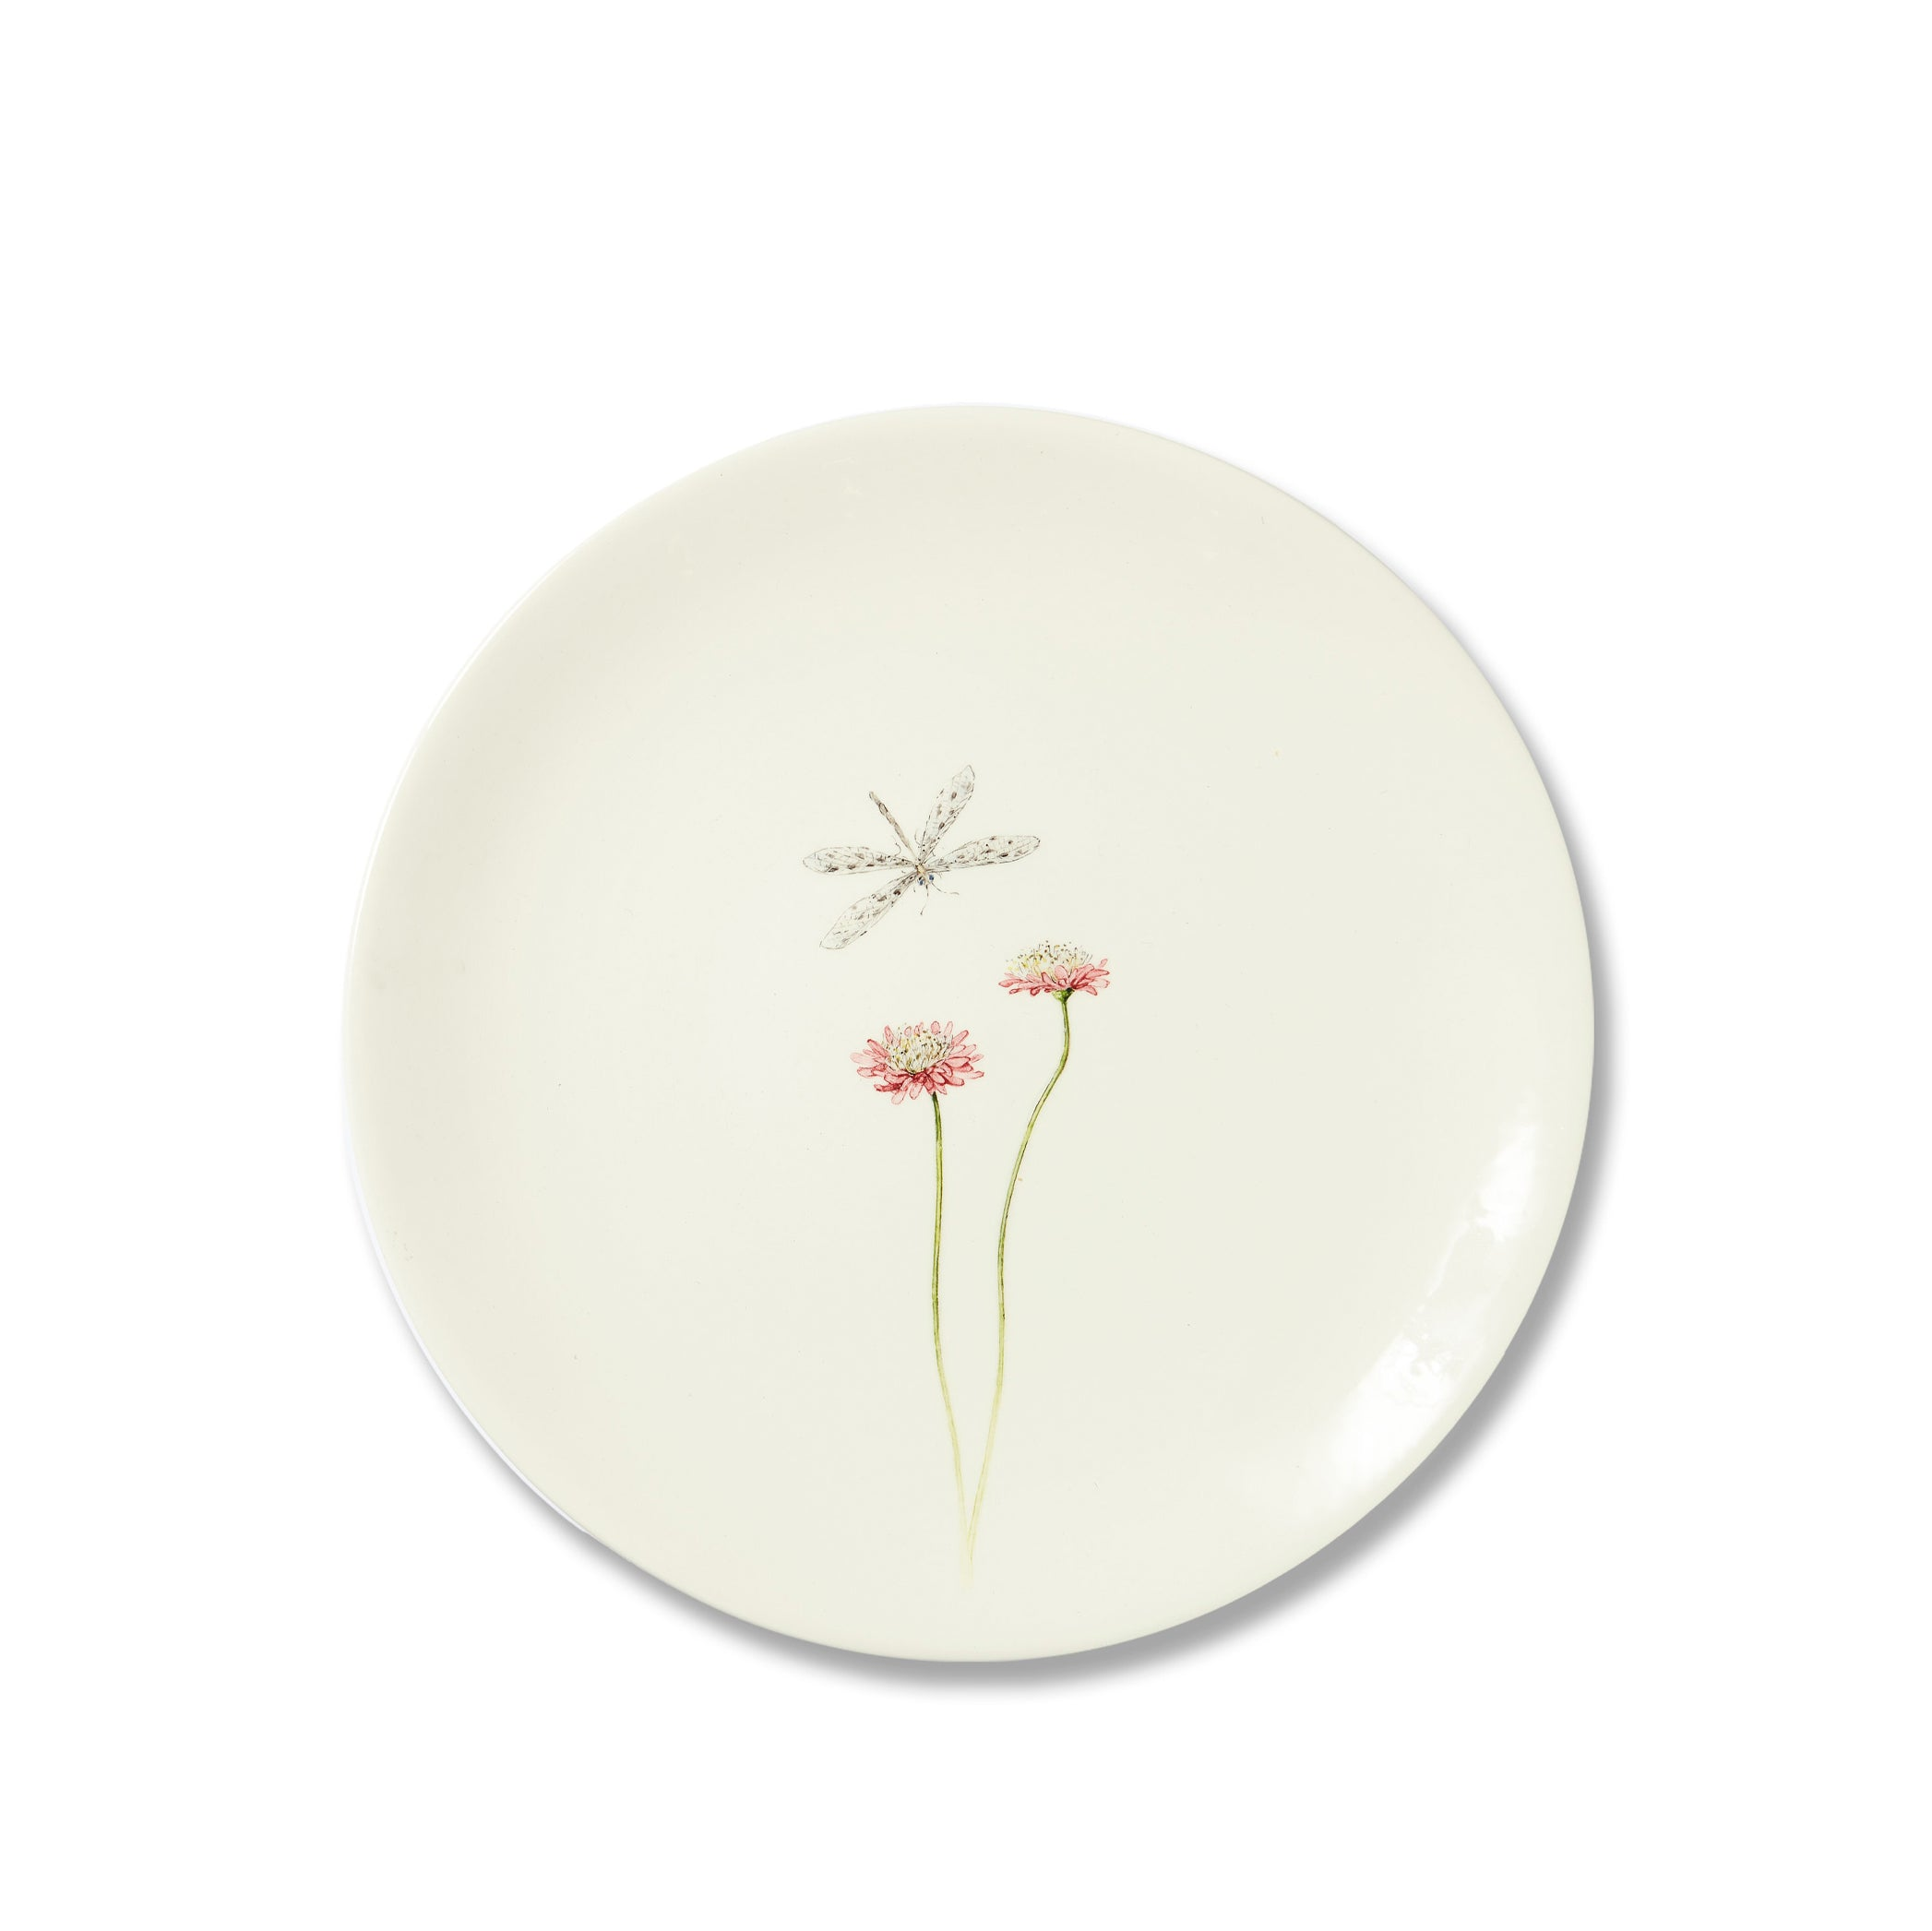 Bloom Pincushion Dinner Plate, 25cm